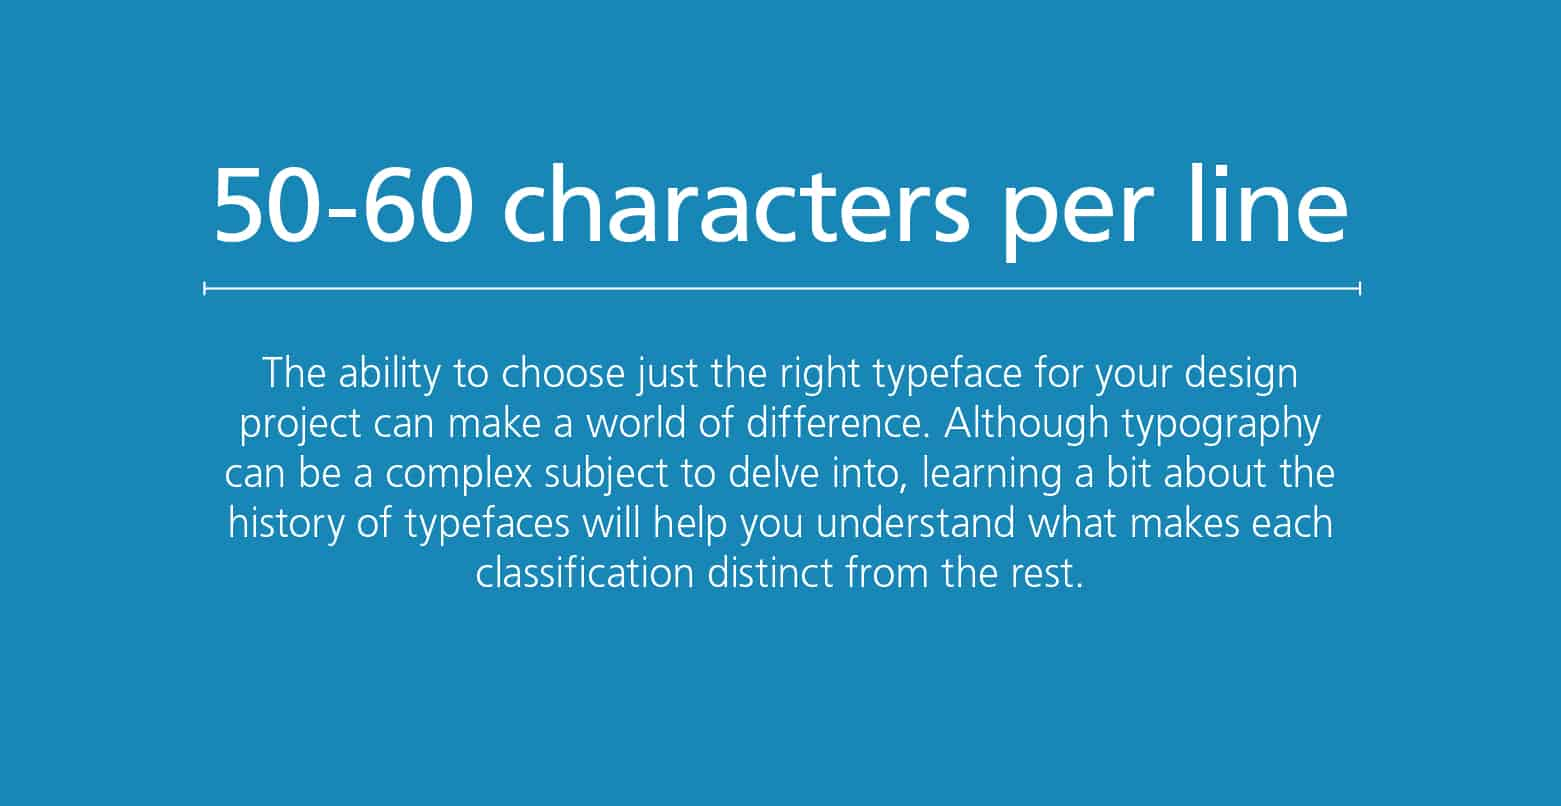 Graphic Design Tips - Keep copy to 50-60 characters per line